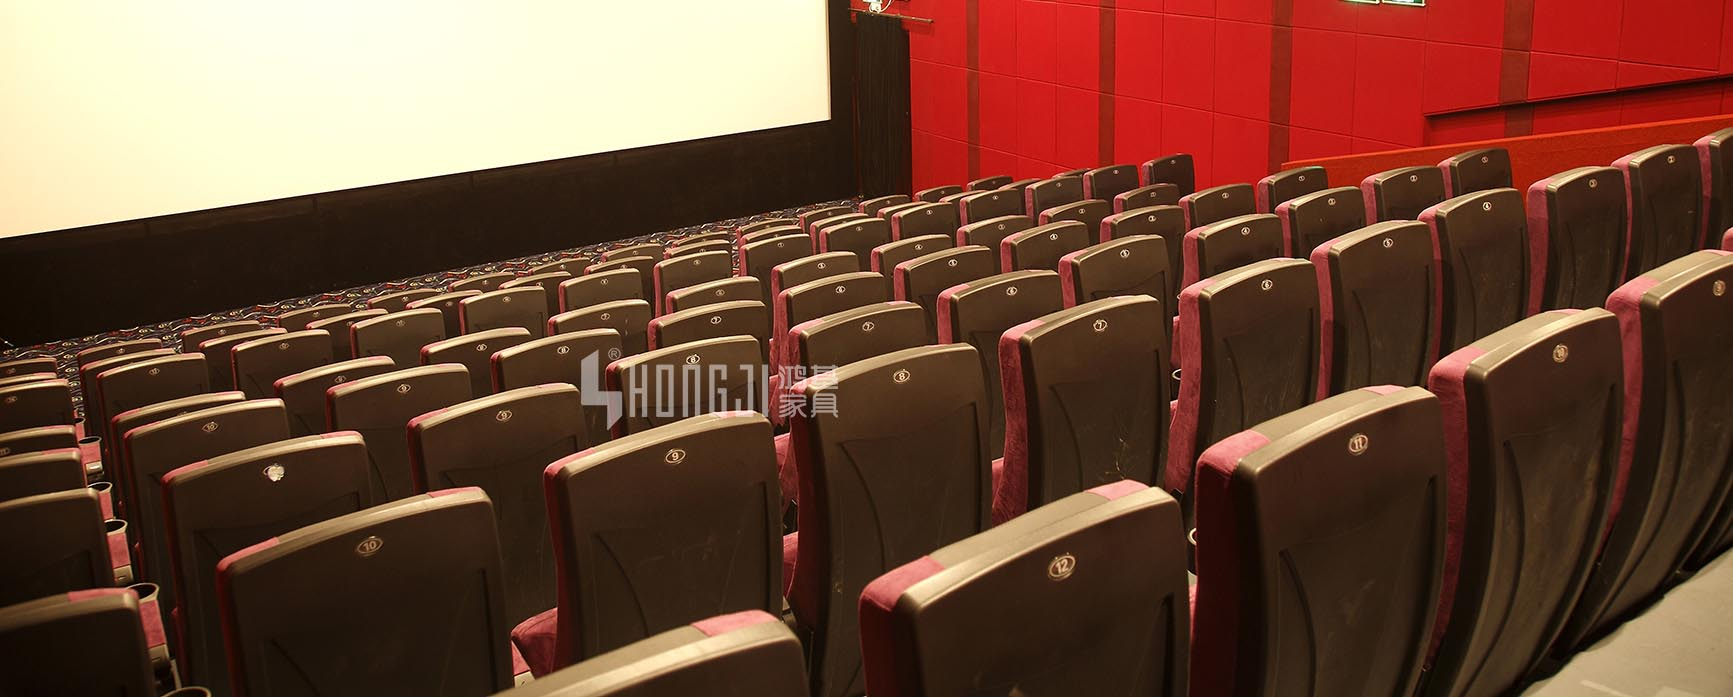 HONGJI hj9963 home theater seating factory for theater-12